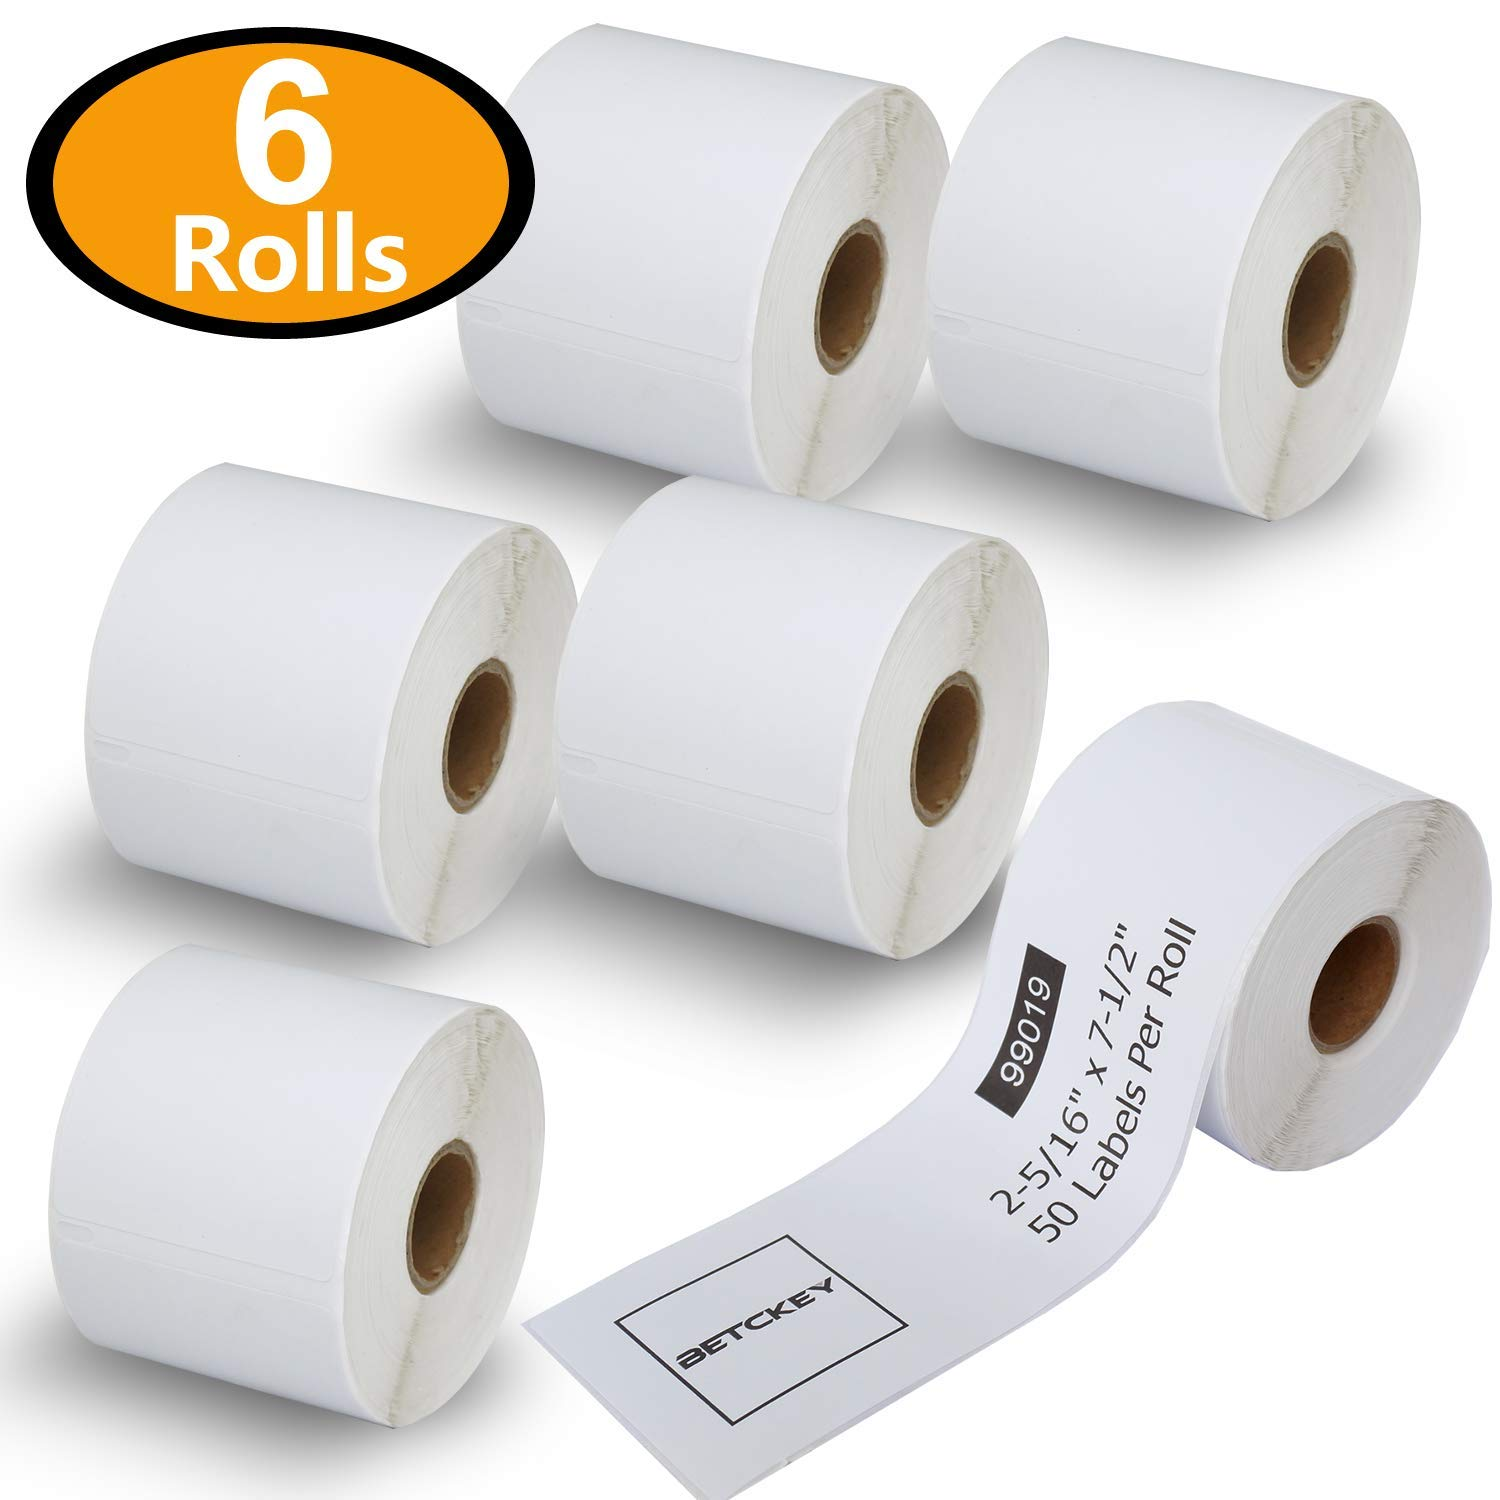 6 Rolls Dymo 99019 Compatible 2-5/16'' x 7-1/2''(59mm x 190mm) Internet Postage Labels,Compatible With Dymo 450, 450 Turbo, 4XL And Many More